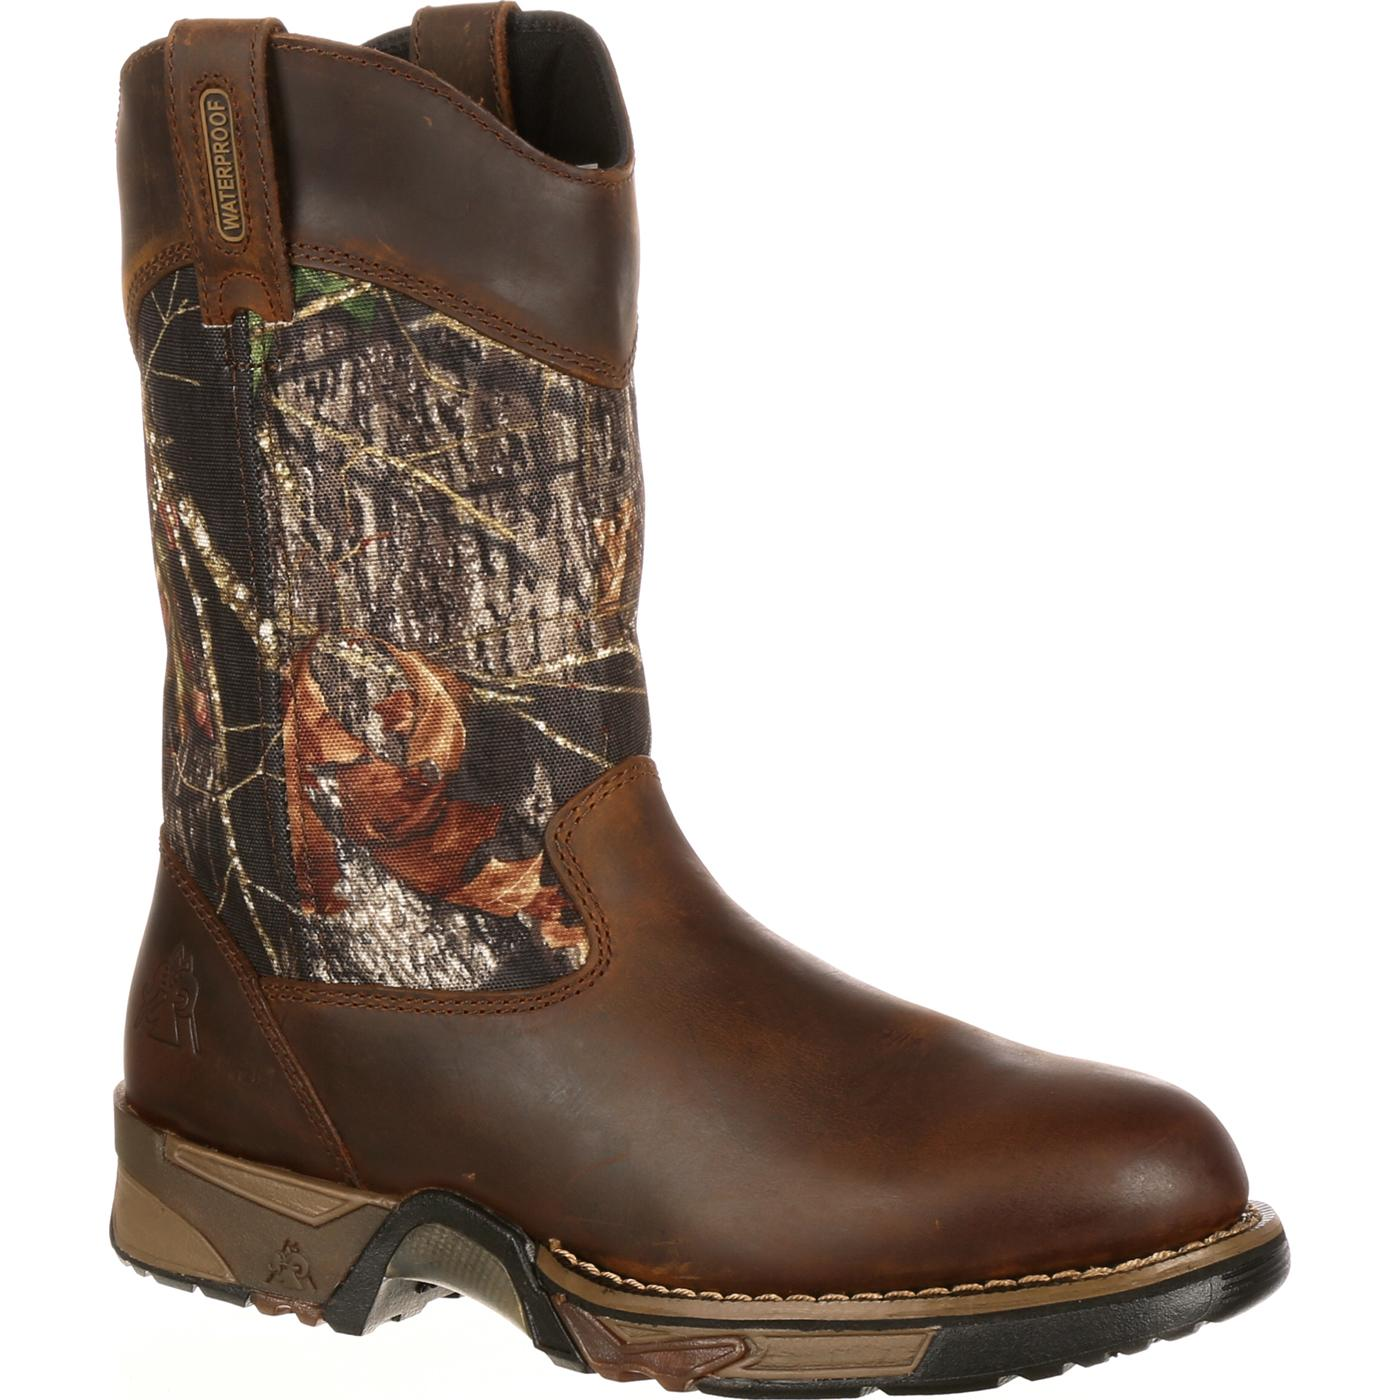 a2b7a0f370e Rocky Aztec Waterproof Camo Pull-On Boots